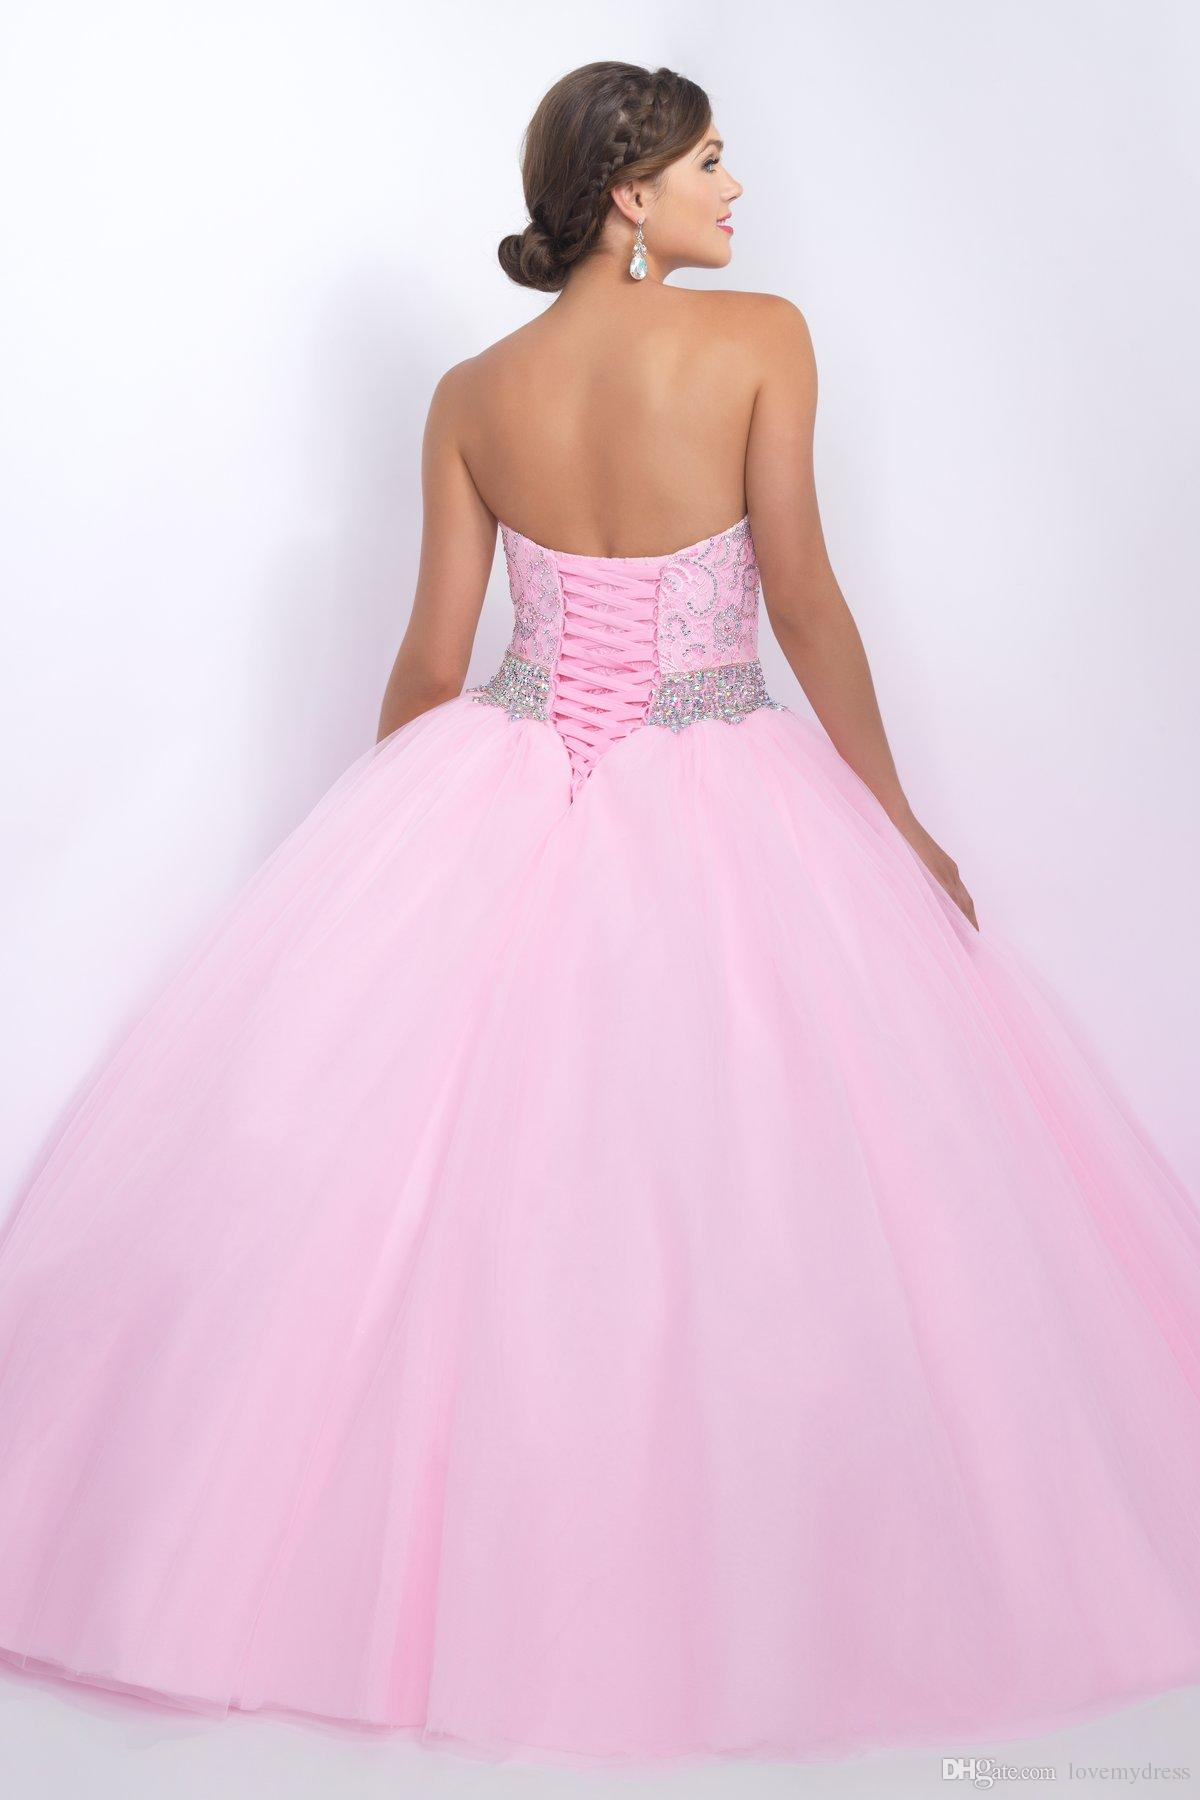 Elegant Quinceanera Dress Long Crystals Sparked Shiny Prom Dresses Pageant Gown Lace Beaded Collar Pink Gown Sweet 16 Girls Modest Country